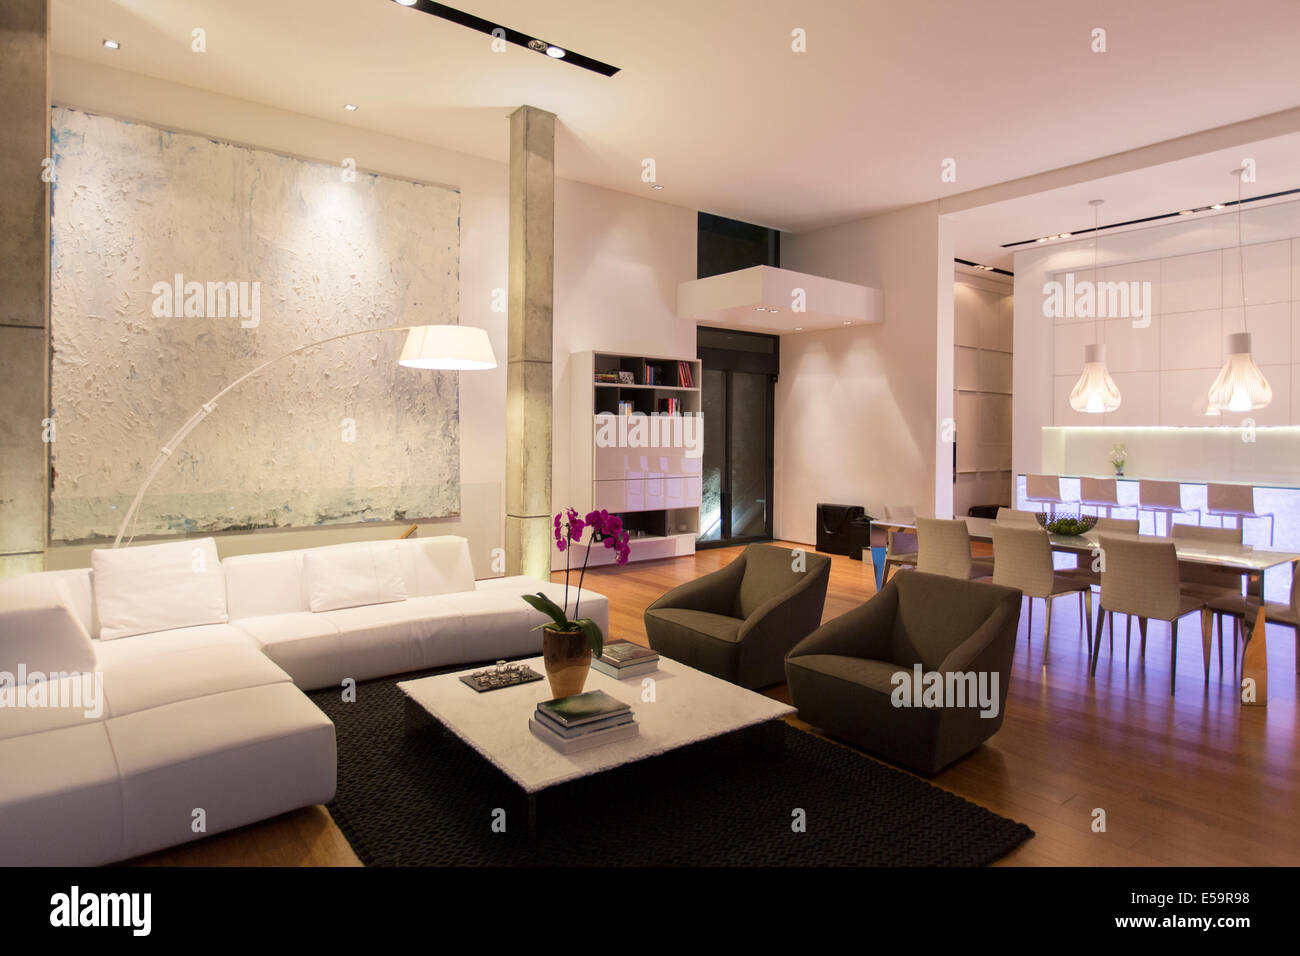 Sofa and table in modern living room Stock Photo: 72130612 - Alamy